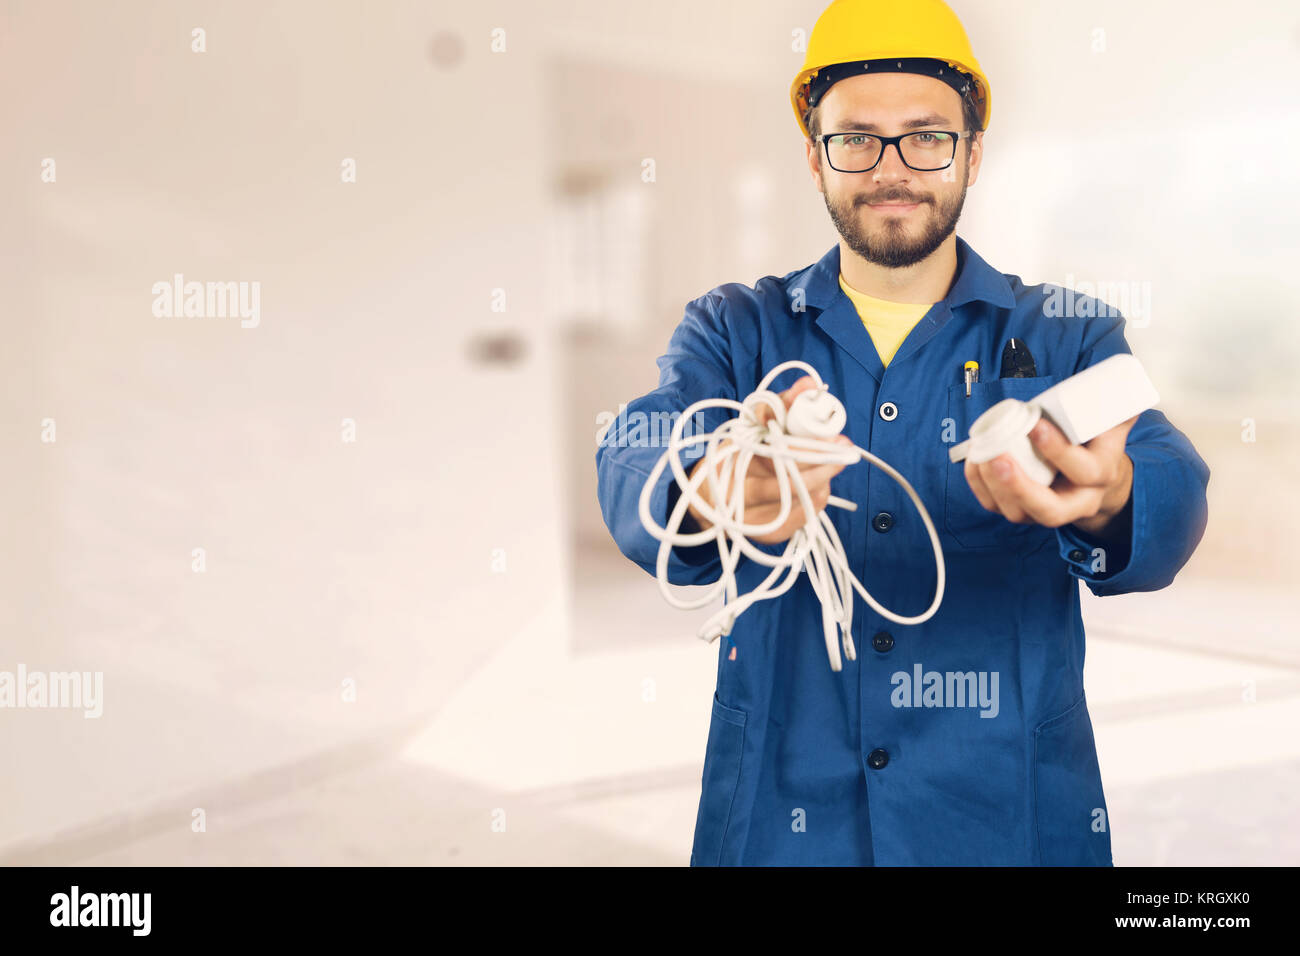 electrician with equipment in hands ready to work - Stock Image